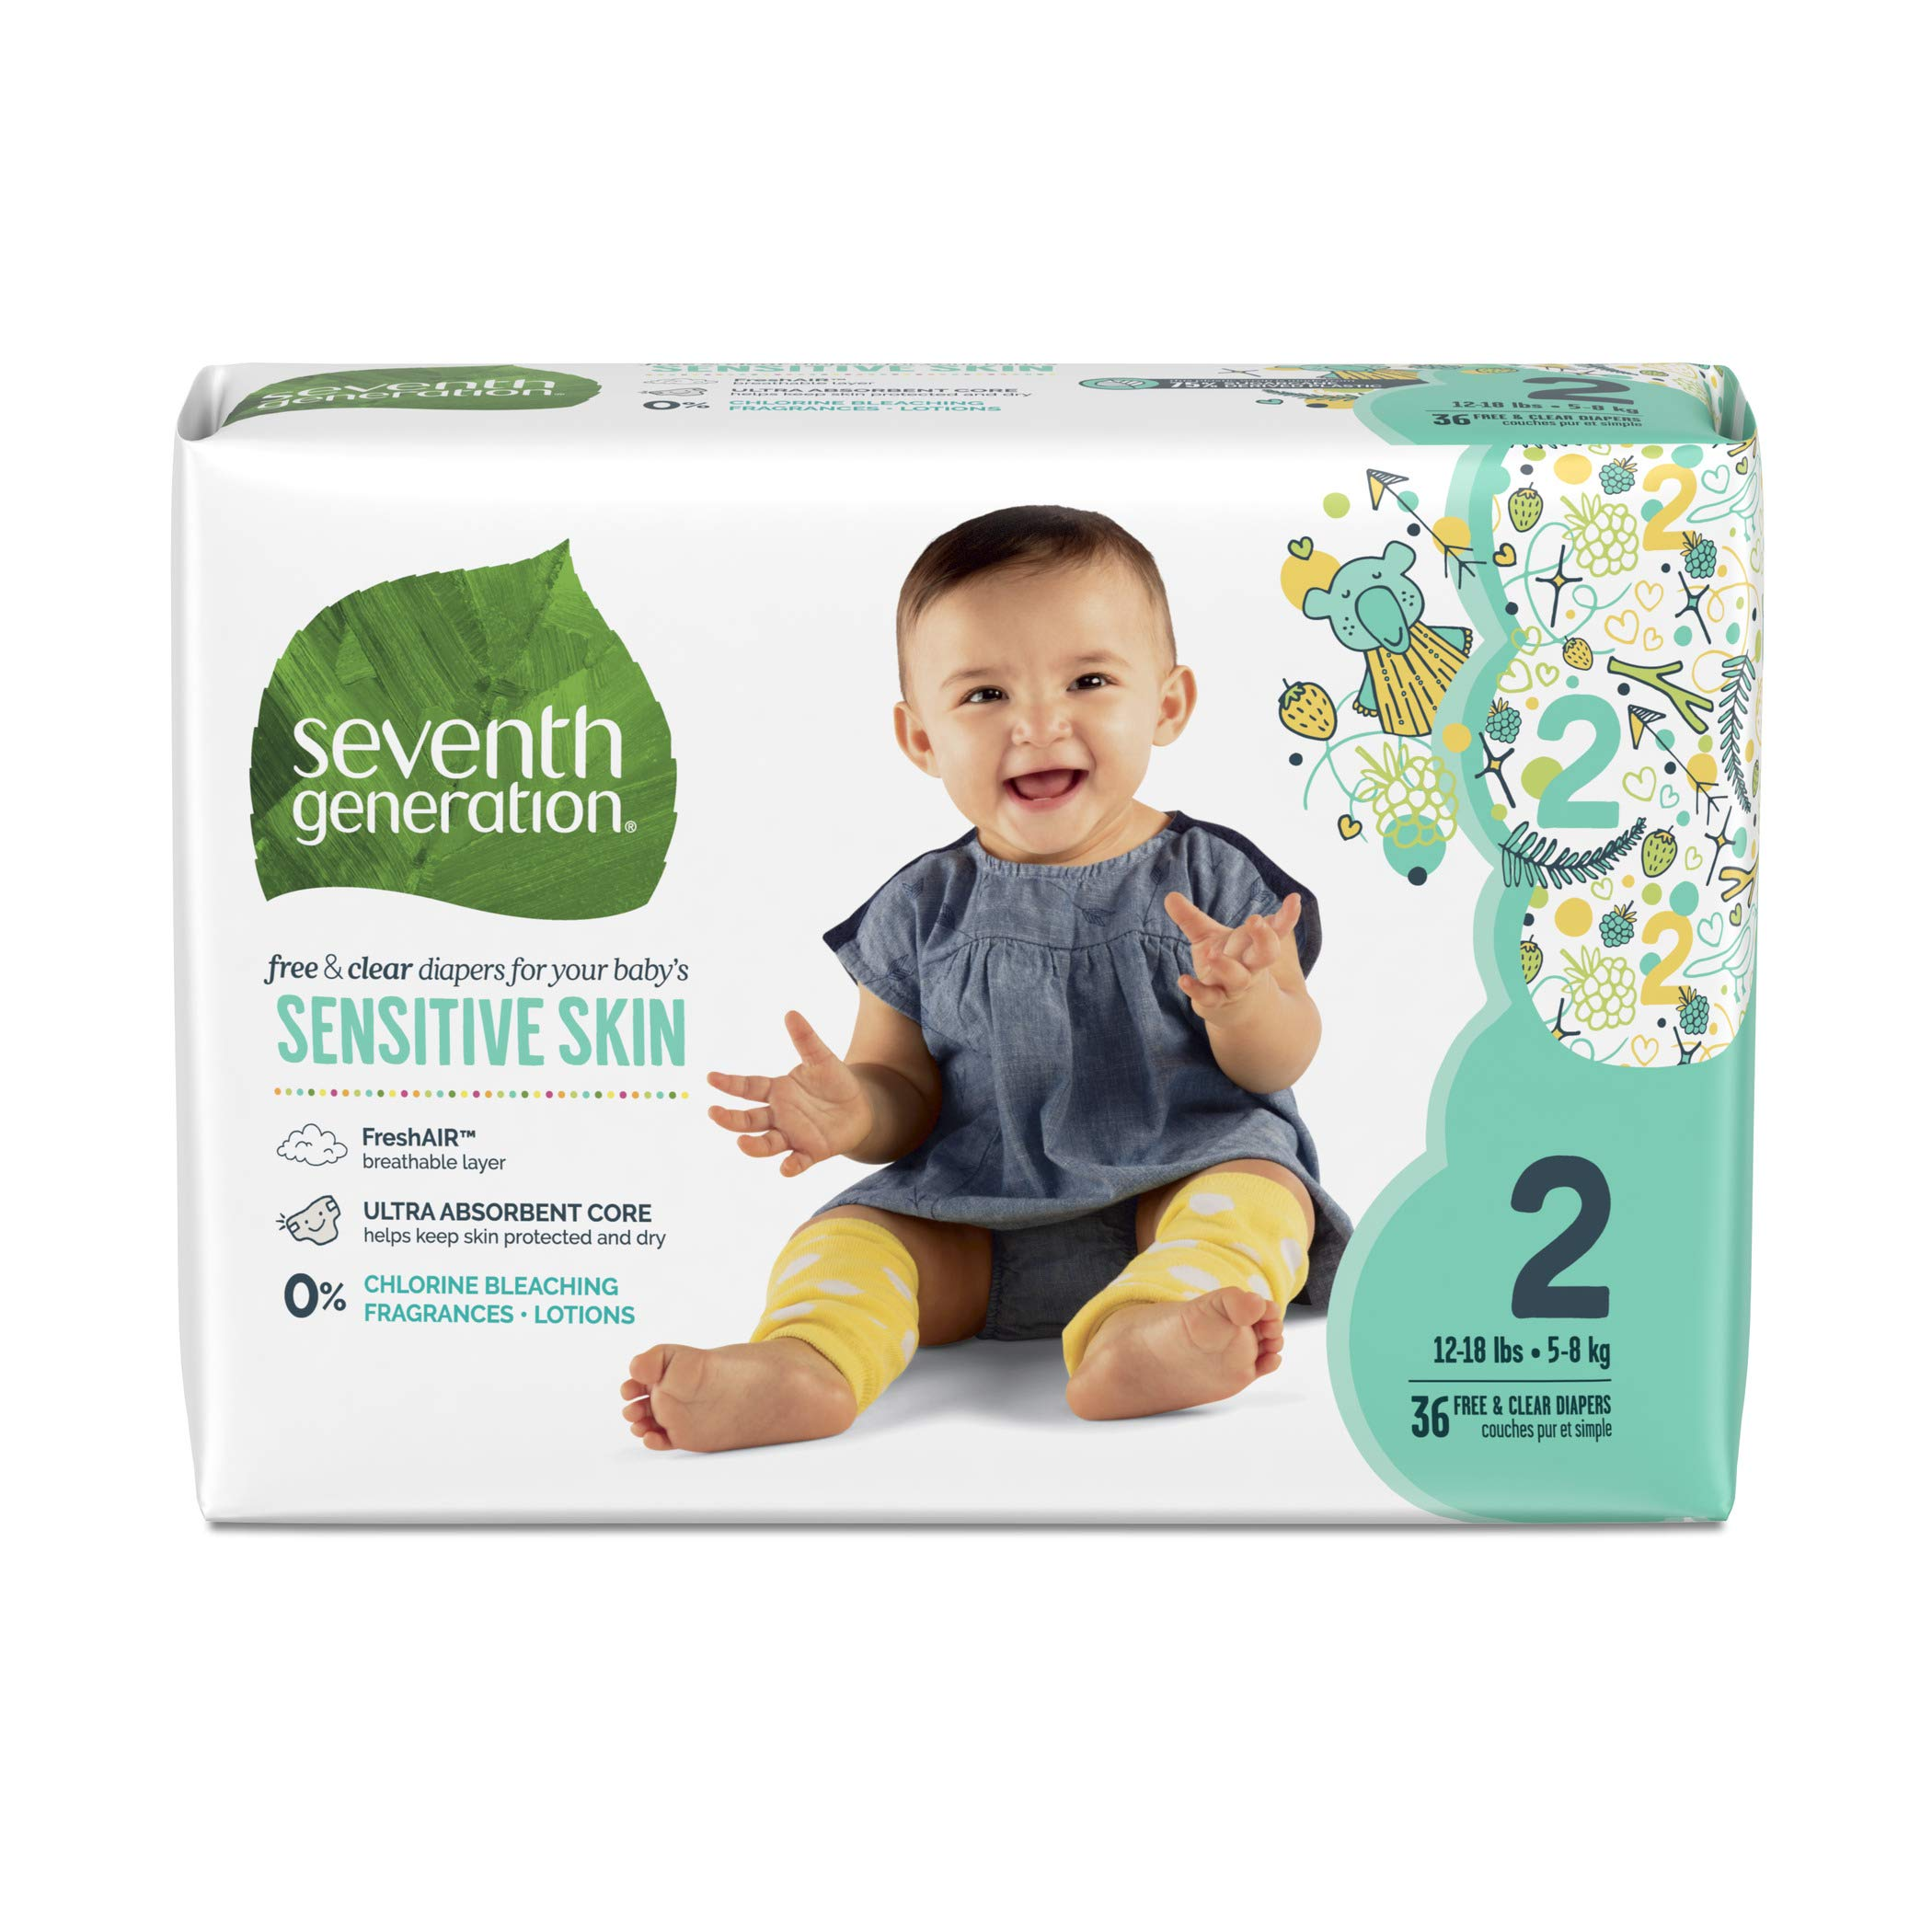 Seventh Generation Free and Clear Sensitive Skin Baby Diapers, Size 2, 144 Count